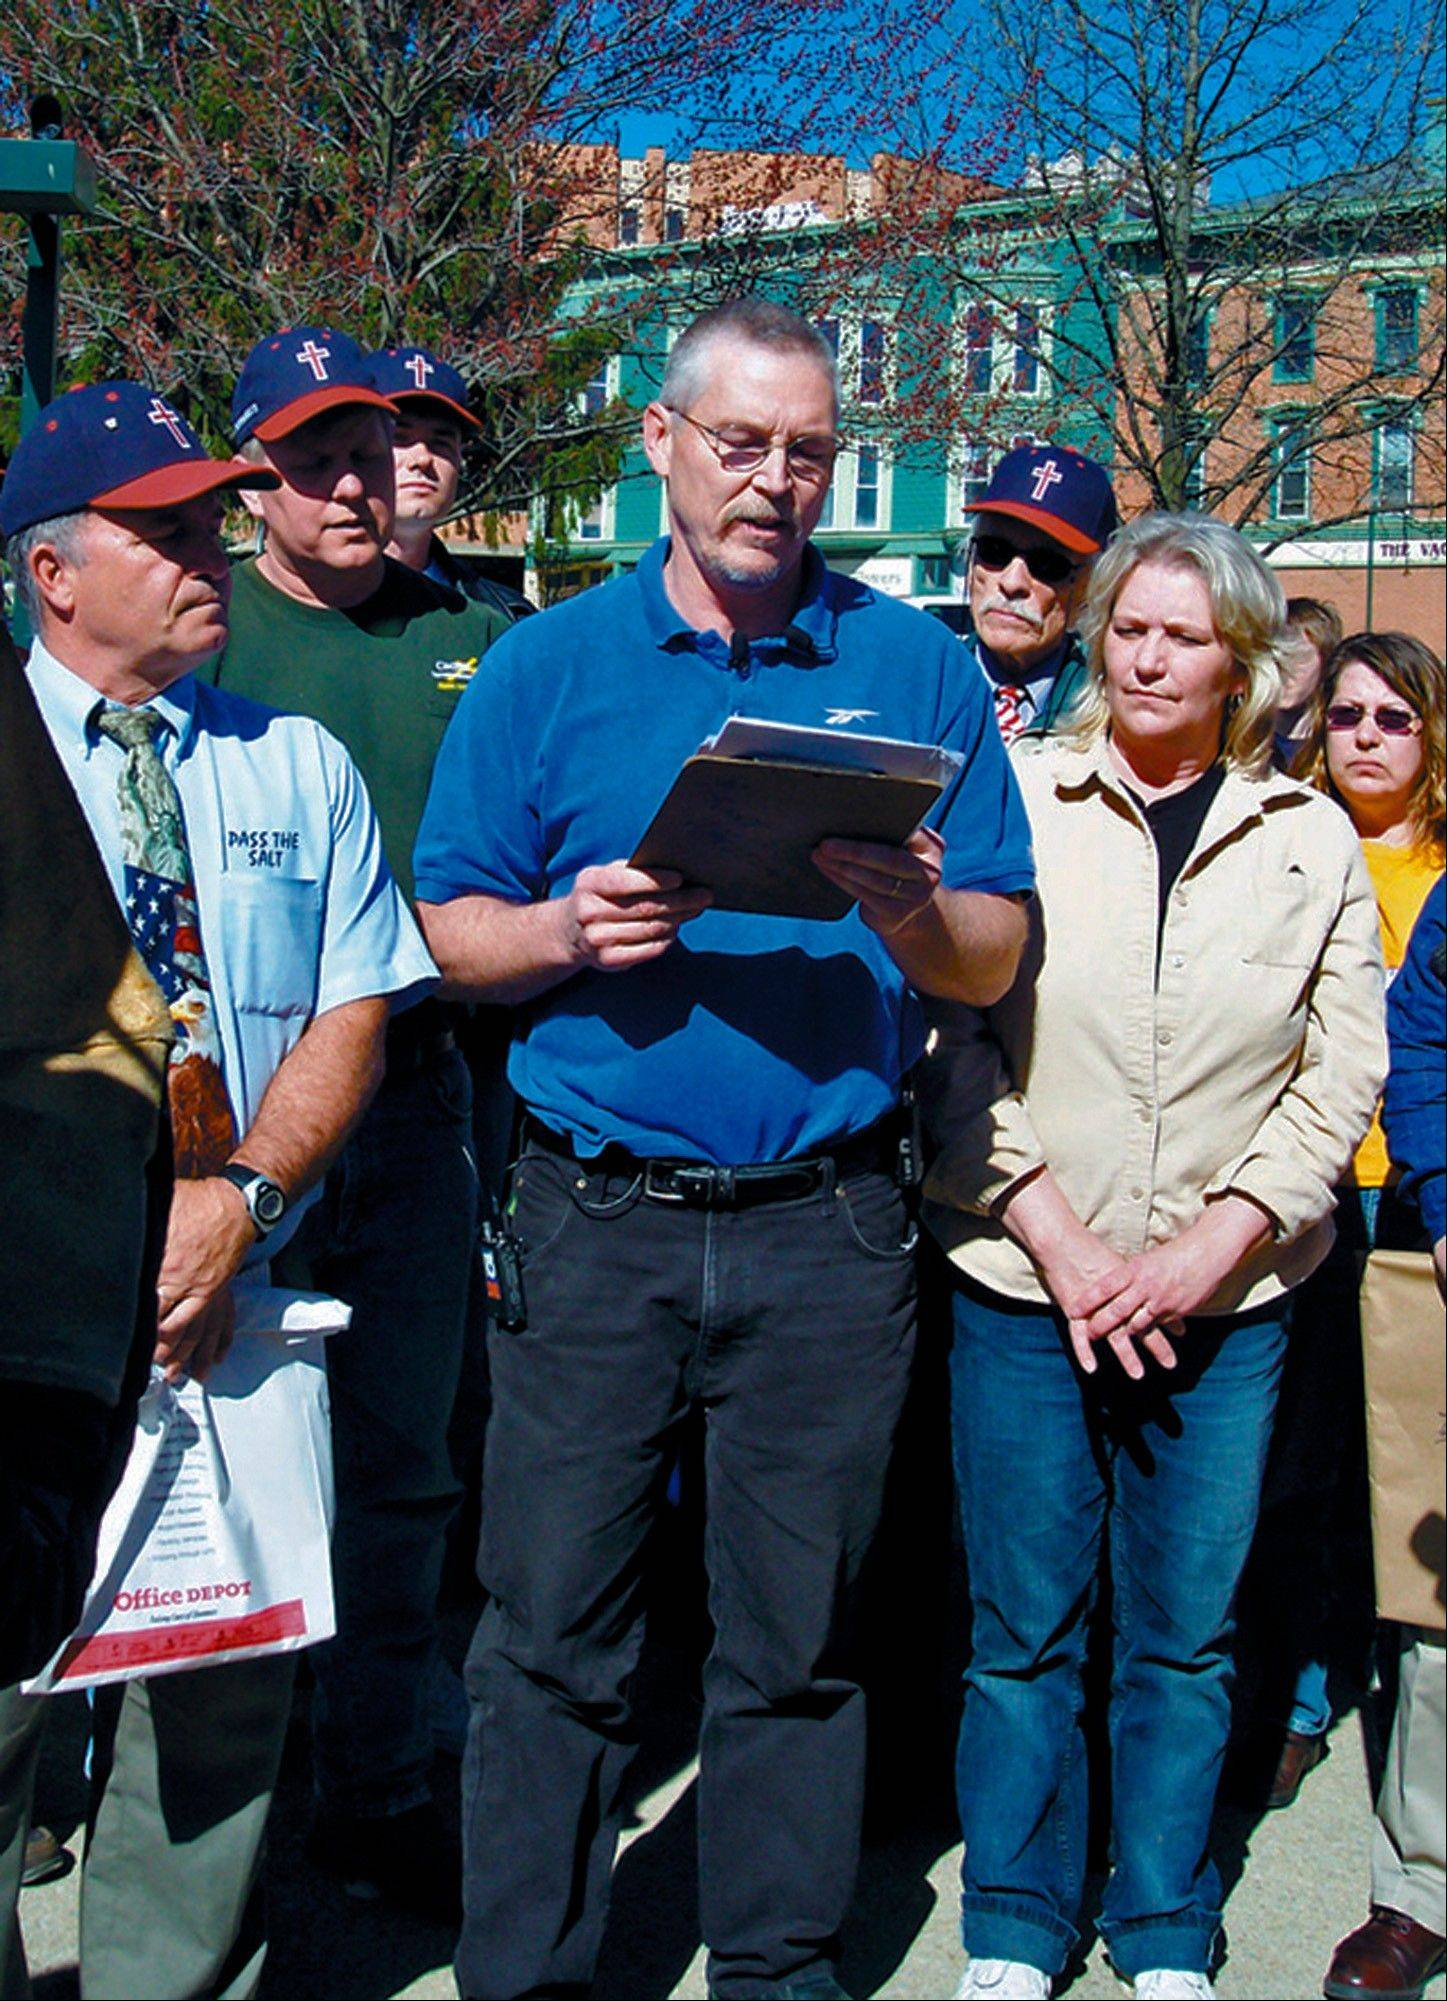 Associated Press/April 16, 2008 John Freshwater, center, addresses a crowd on Mount Vernon�s public square in Mount Vernon, Ohio.